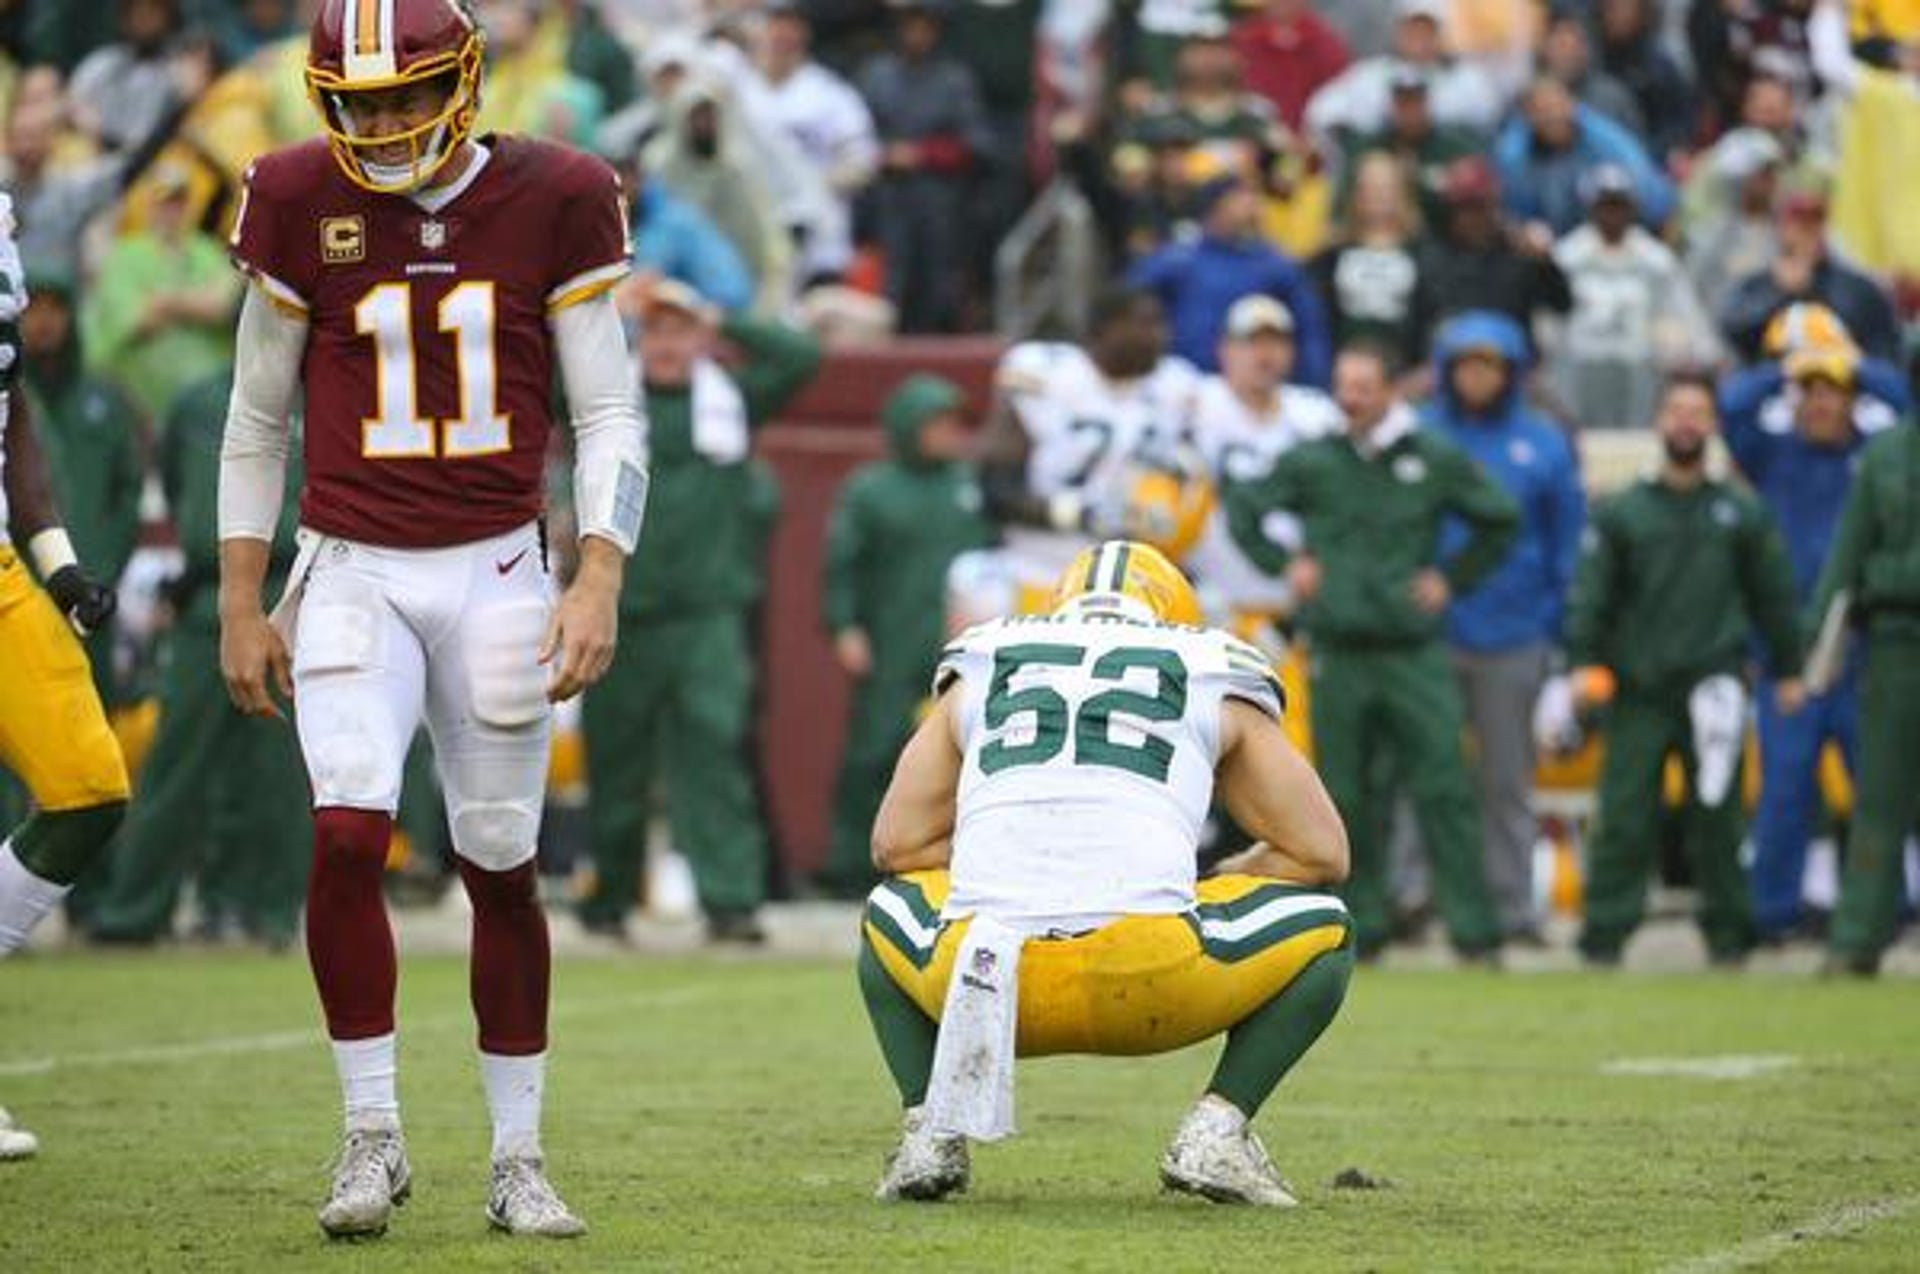 Sep 23, 2018; Landover, MD, USA; Green Bay Packers linebacker Clay Matthews (52) reacts after sacking Washington Redskins quarterback Alex Smith (11) in the third quarter at FedEx Field. Matthews received a roughing the passer penalty on the play. The Redskins won 31-17. Mandatory Credit: Geoff Burke-USA TODAY Sports